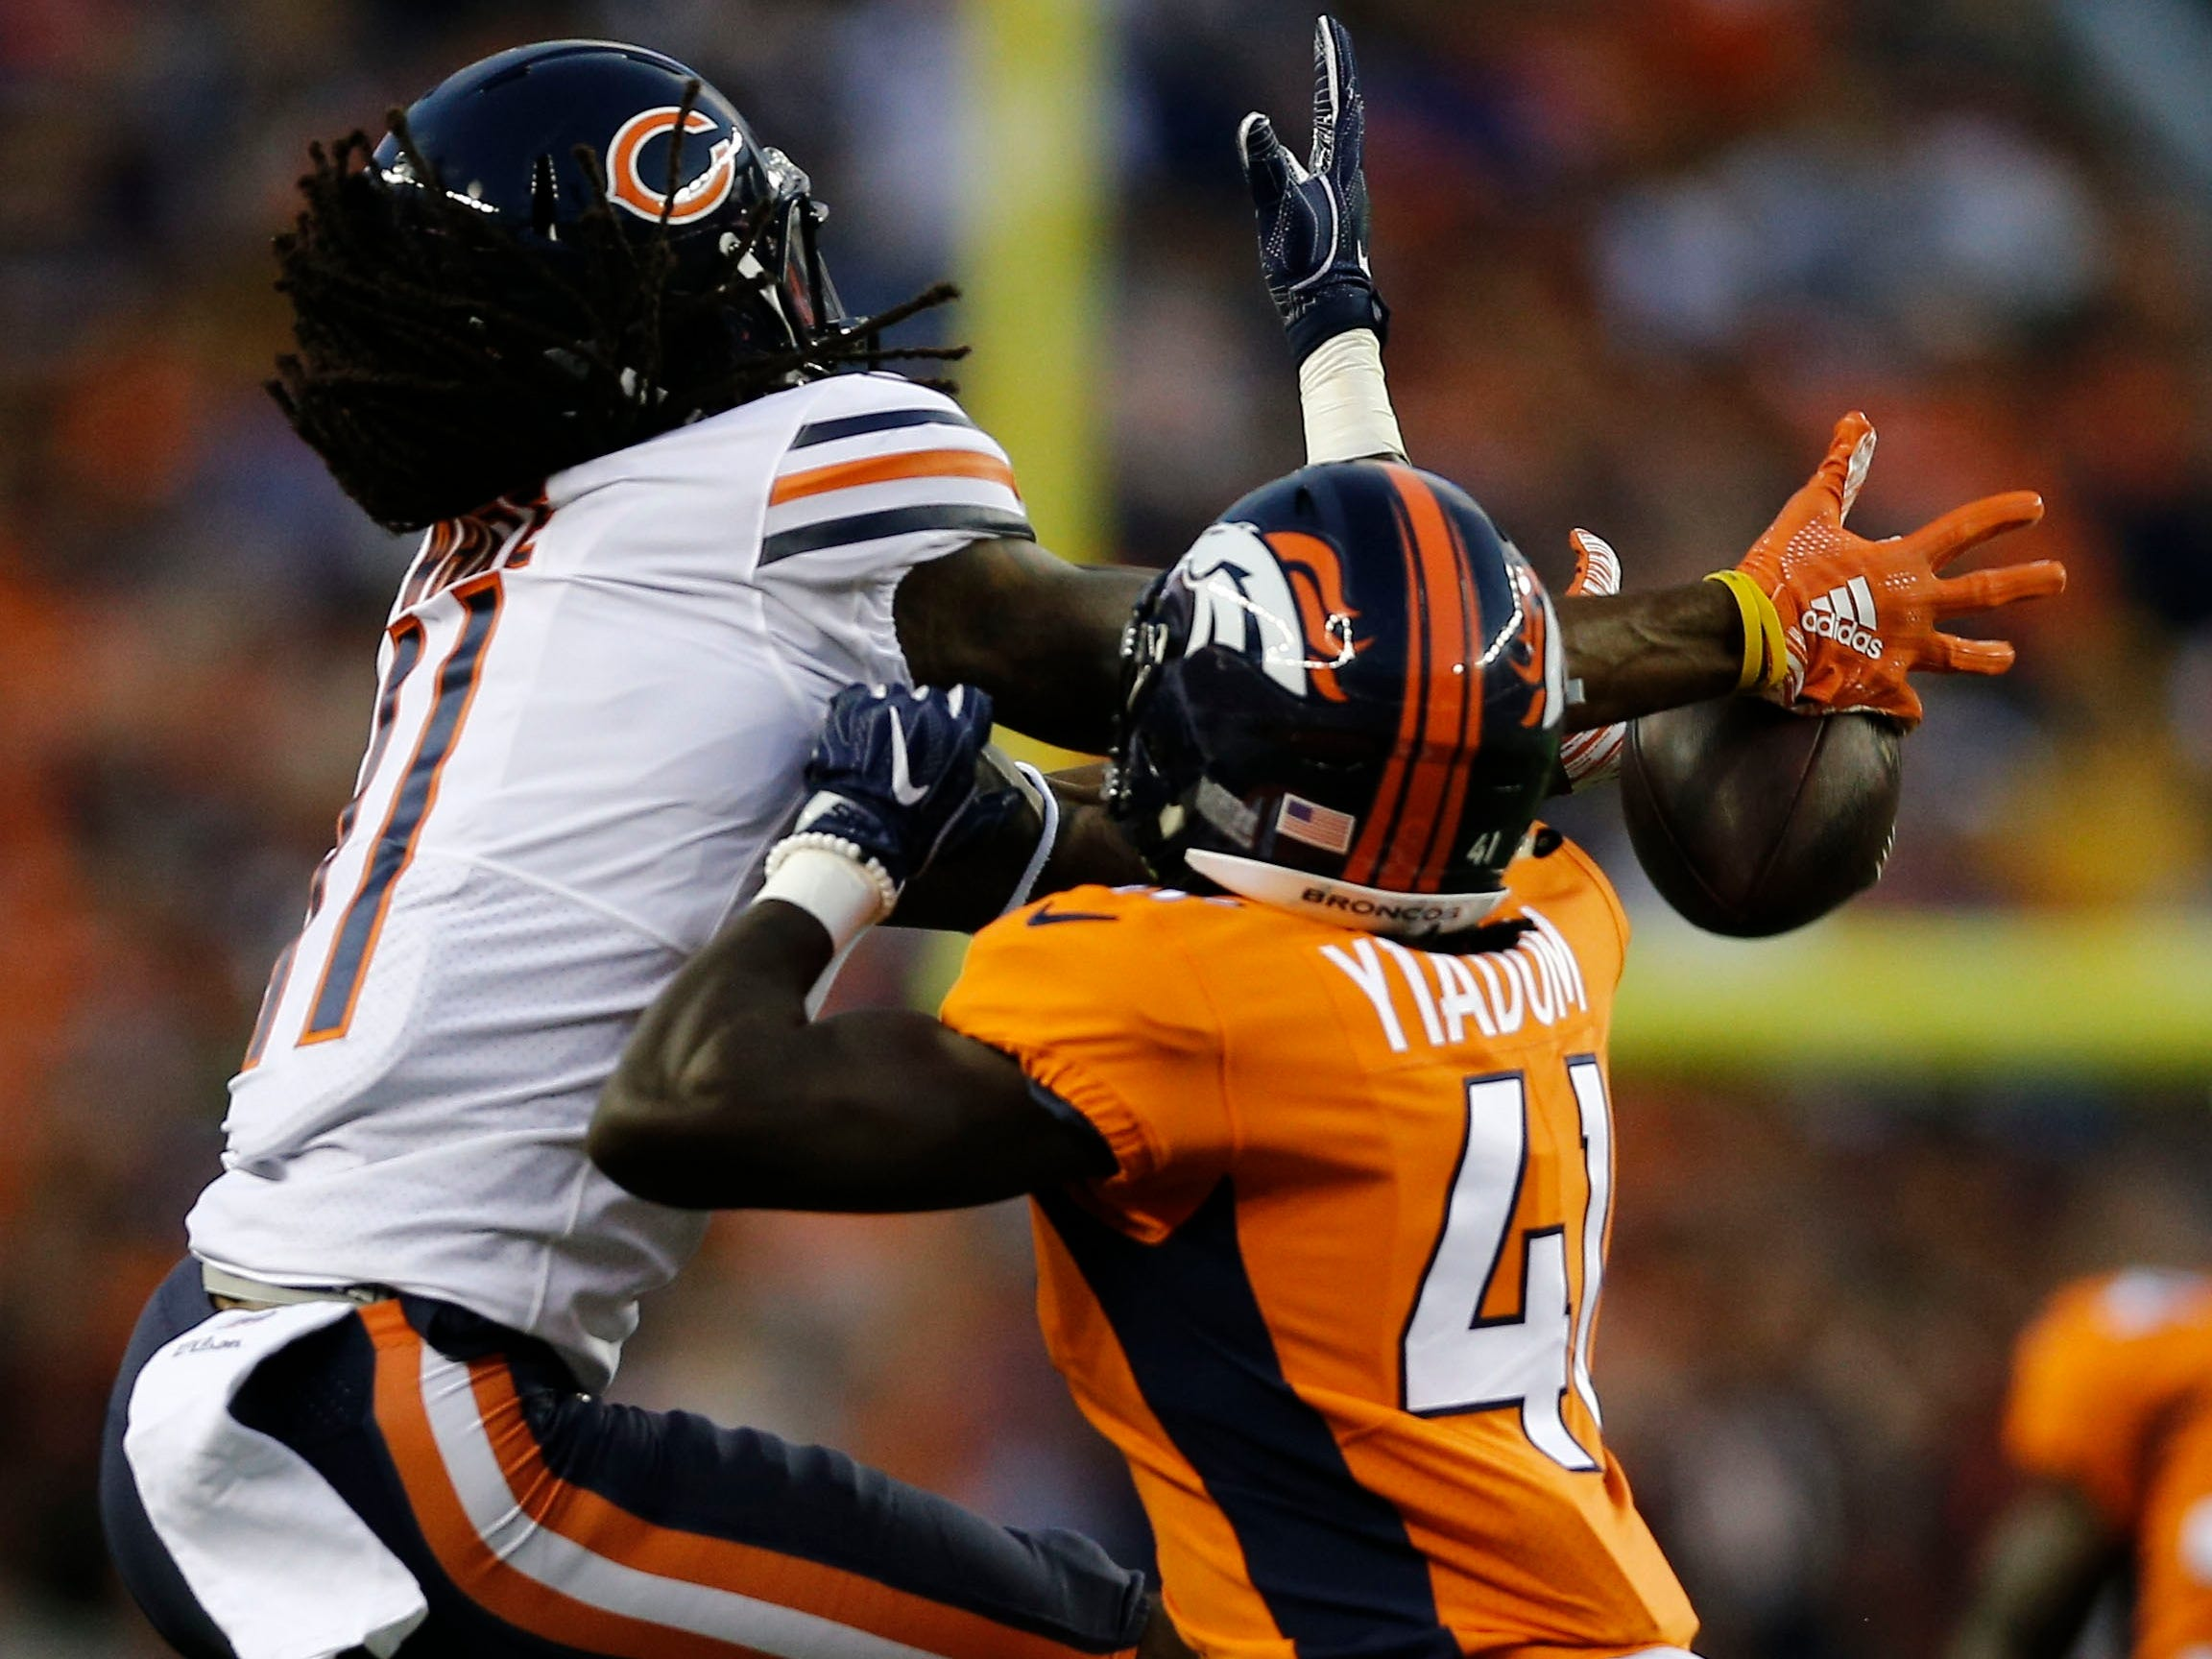 Broncos cornerback Isaac Yiadom (41) breaks up a pass intended for Bears receiver Kevin White (11) during the first quarter.